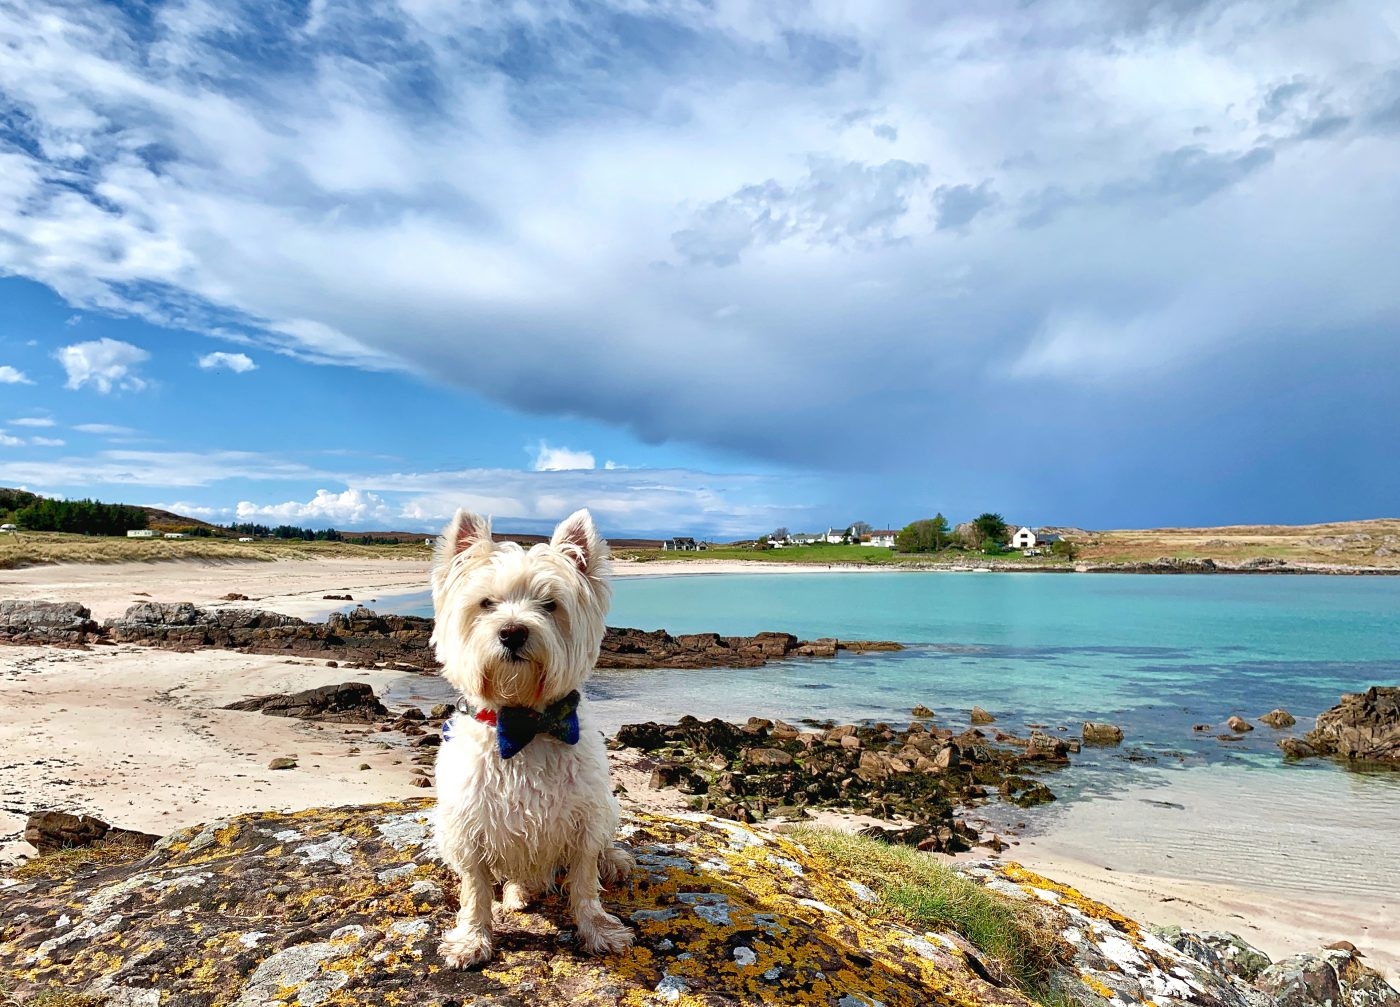 Scotland with The Wee White Dug – A Scotland Travel Blog